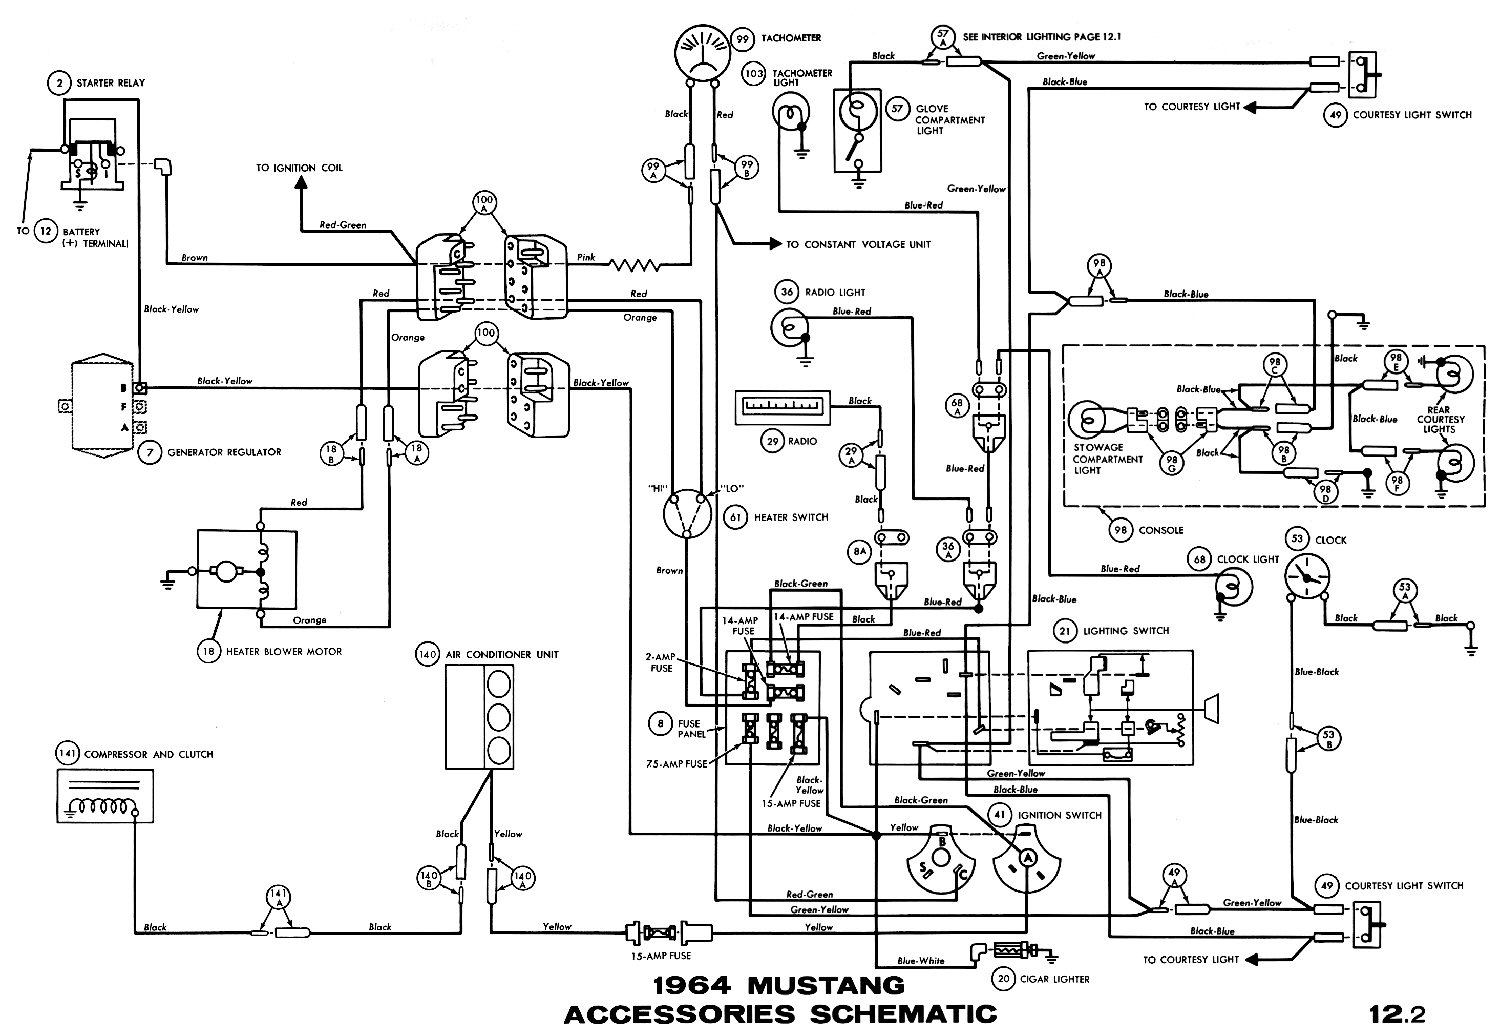 1964m 1964 mustang wiring diagrams average joe restoration 1965 ford mustang wiring diagram at crackthecode.co